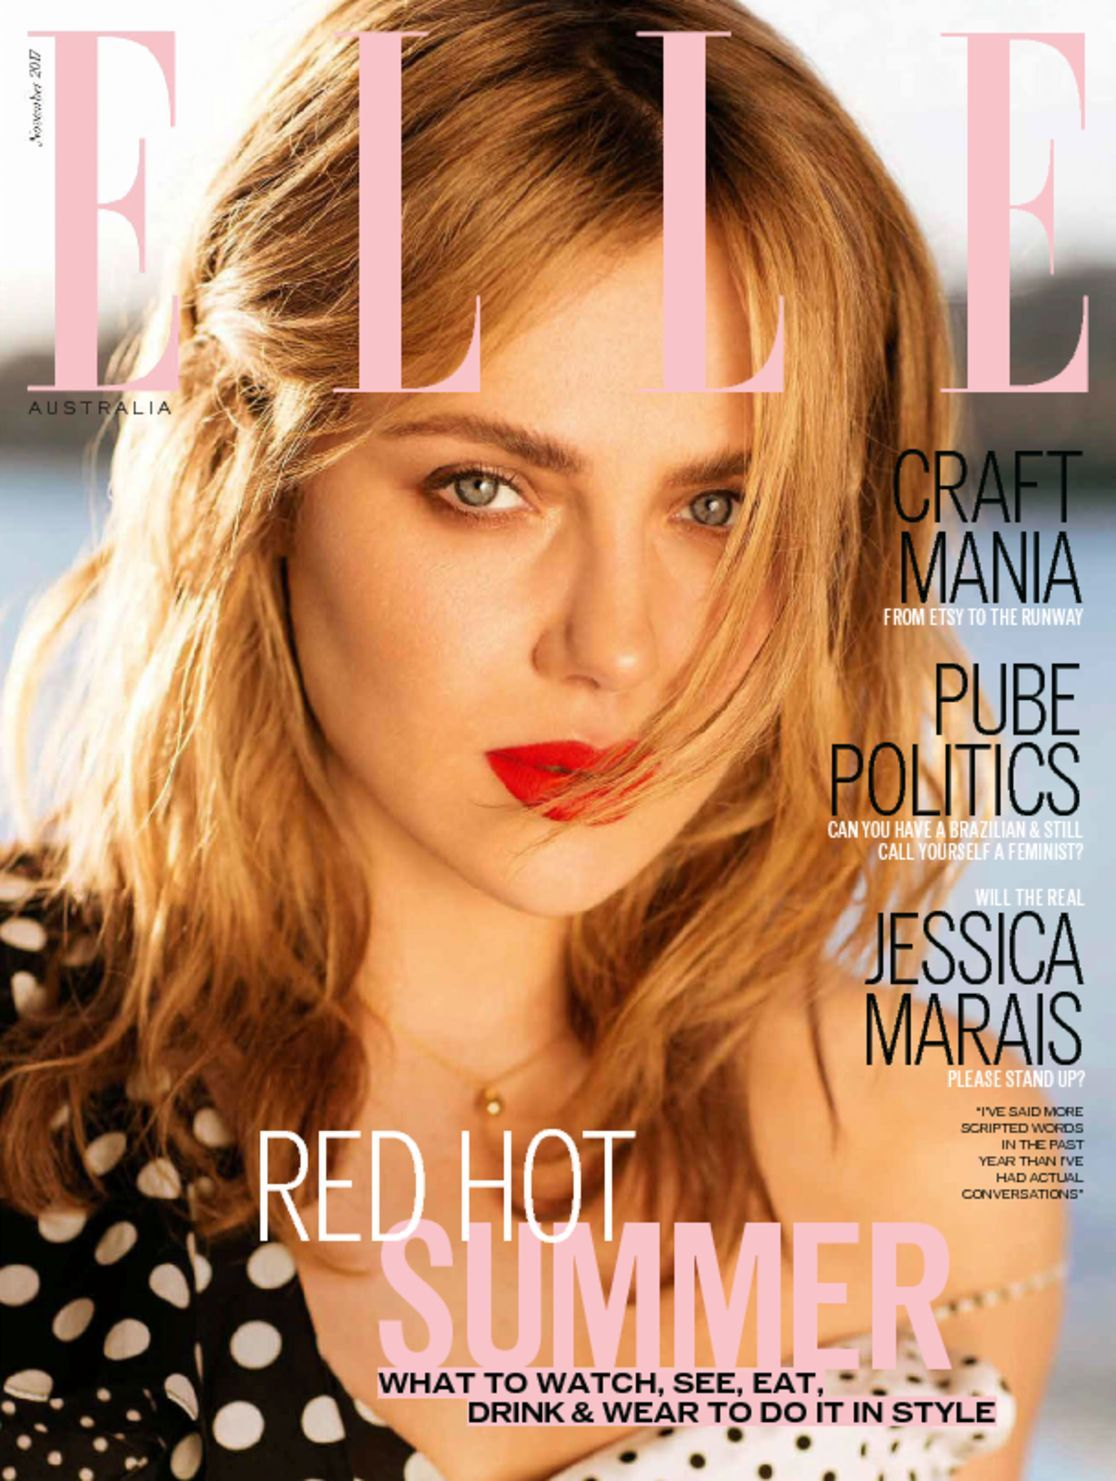 See Elle Australias Premier Cover with Gabby Westbrook